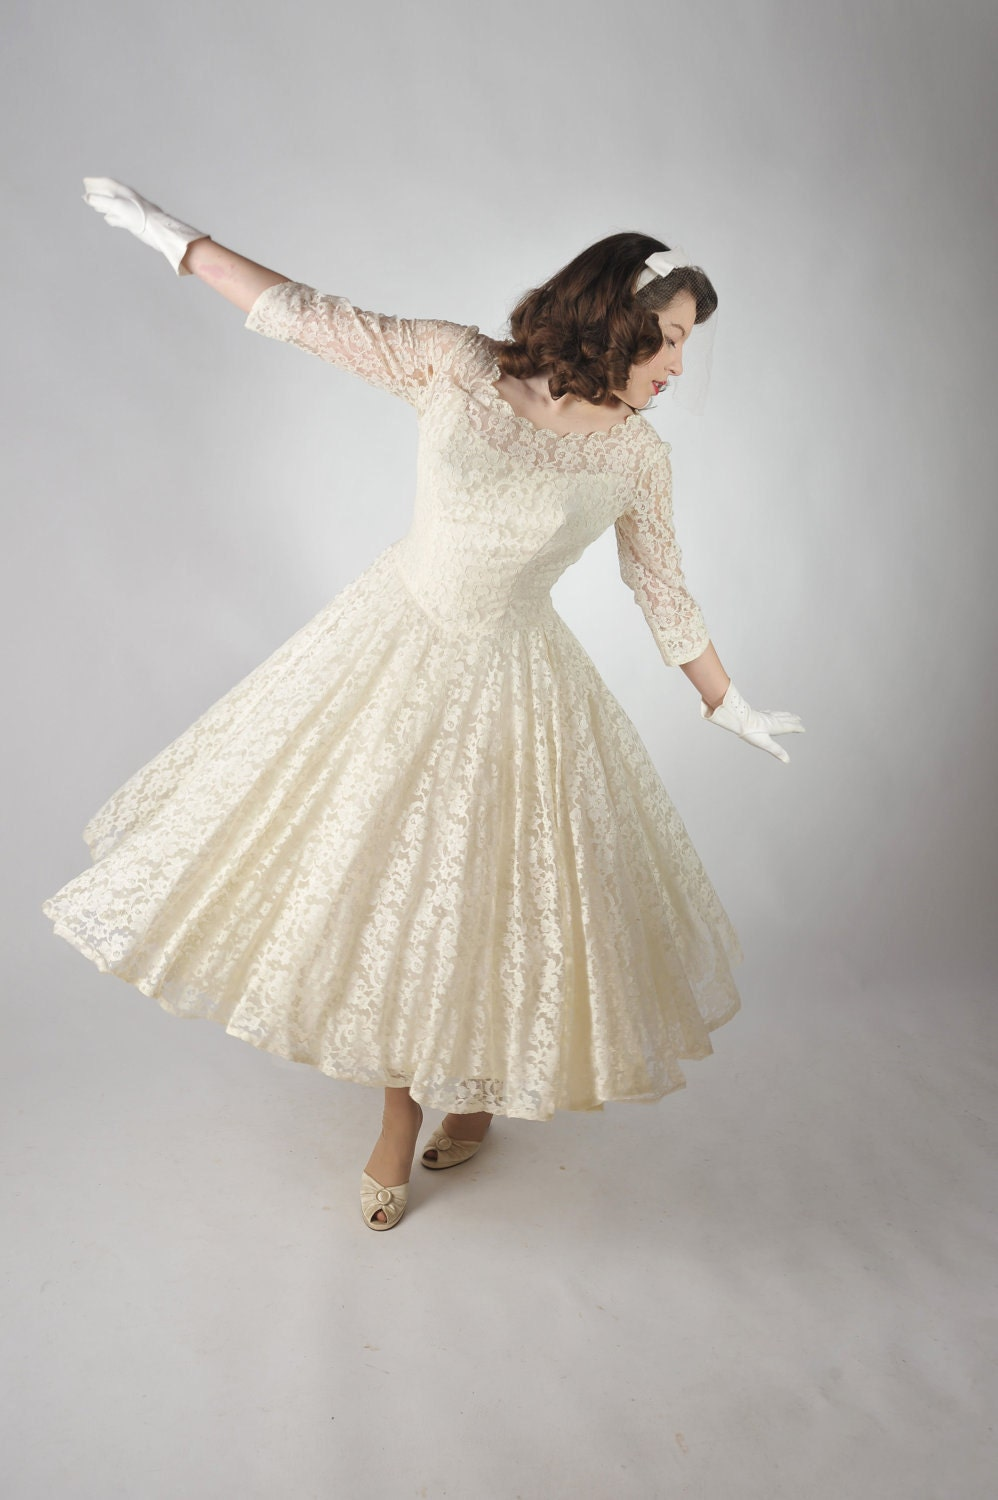 Vintage Wedding Dresses From The 1950 S : Reserved for ivy vintage s wedding dress the dreammaker